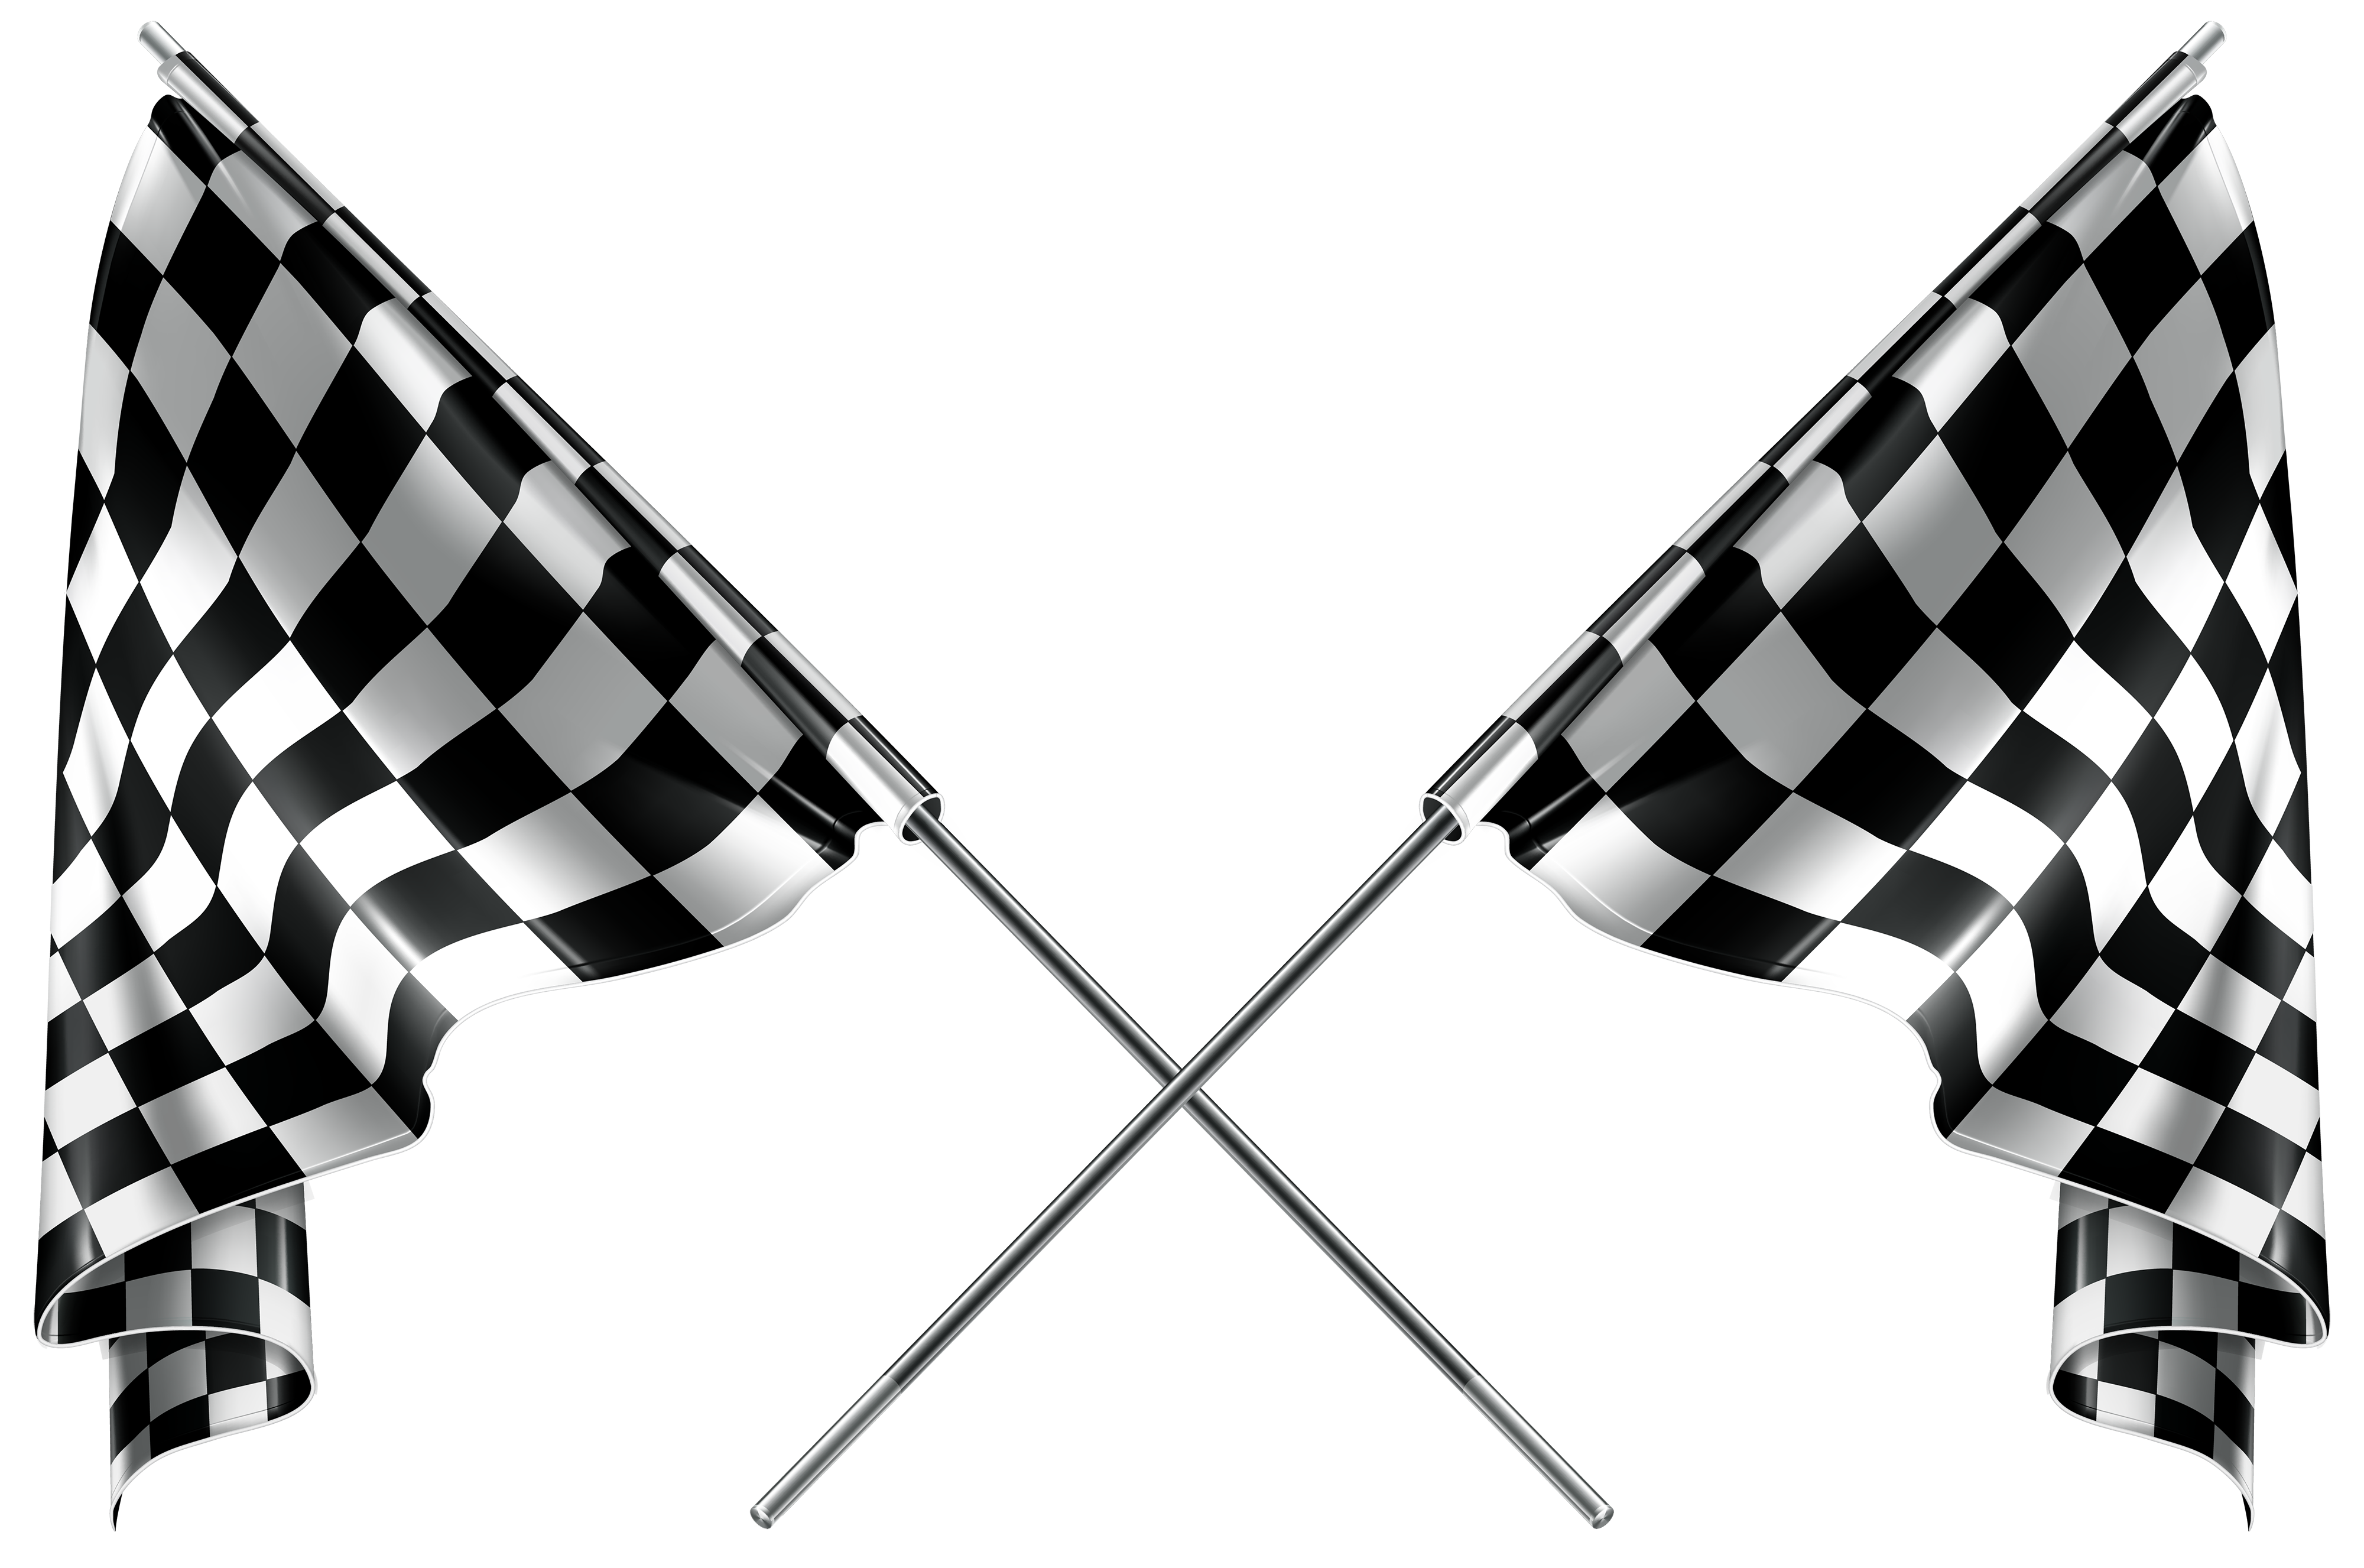 Checkered Flags Clipart Web